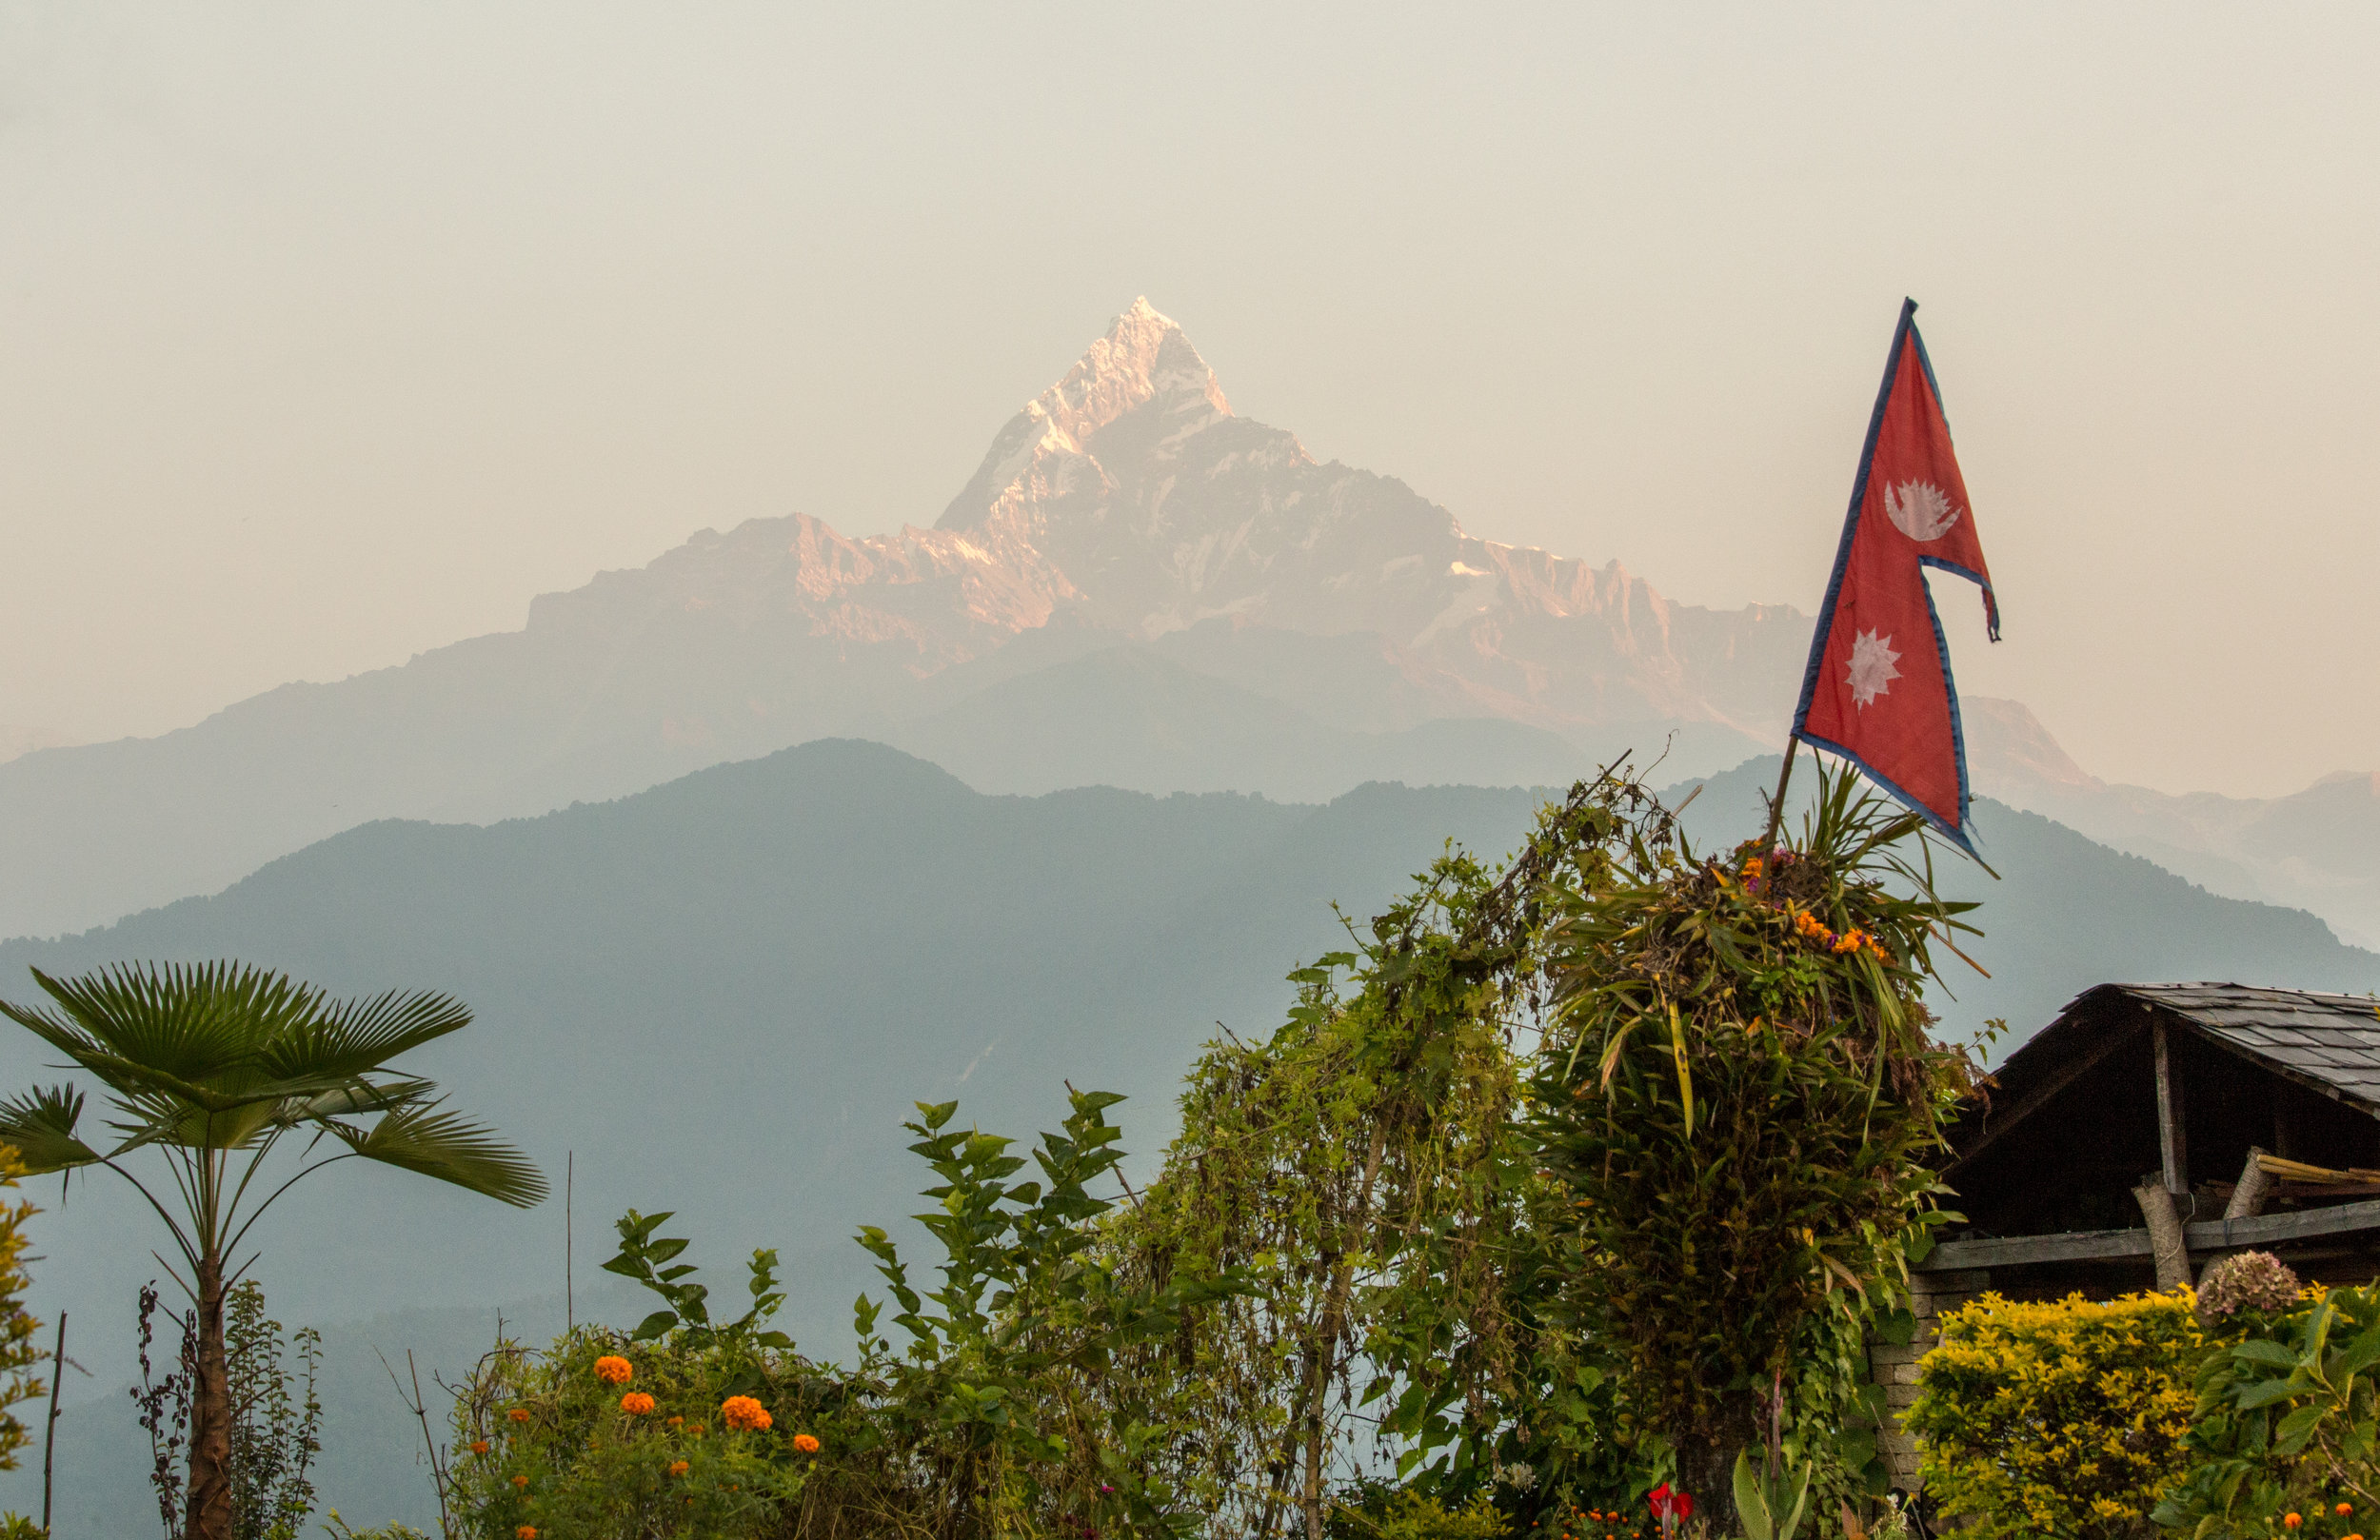 Fishtail peak in the Annapurna Region of the Himalayas. The only peak people are not allowed to climb.